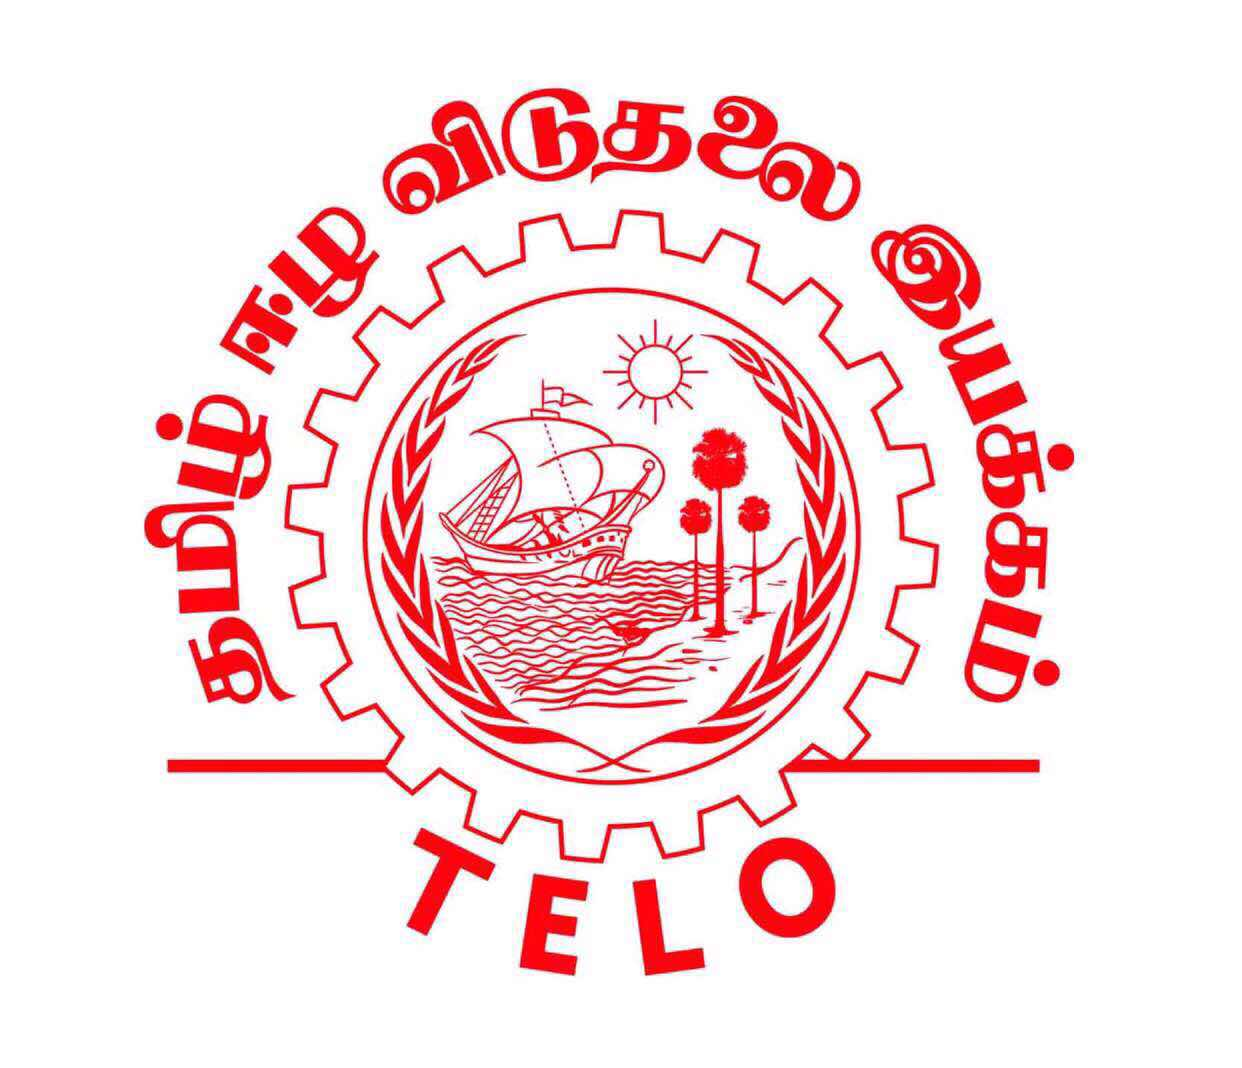 Logo unp clipart picture stock TNA support for UNP: TELO insists on written agreement ... picture stock